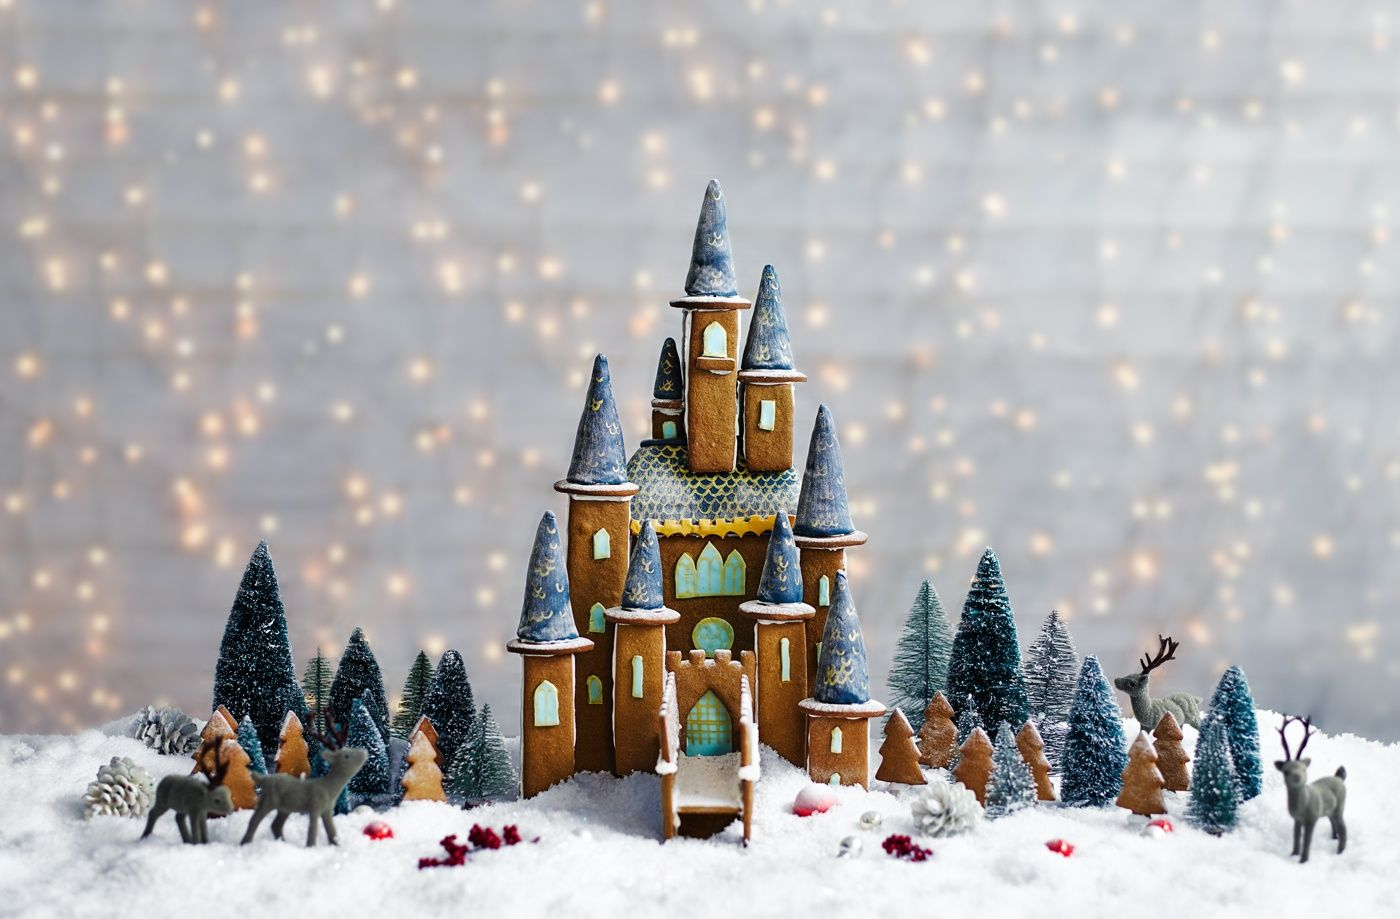 Free From Gingerbread House Kit 420G Gluten free